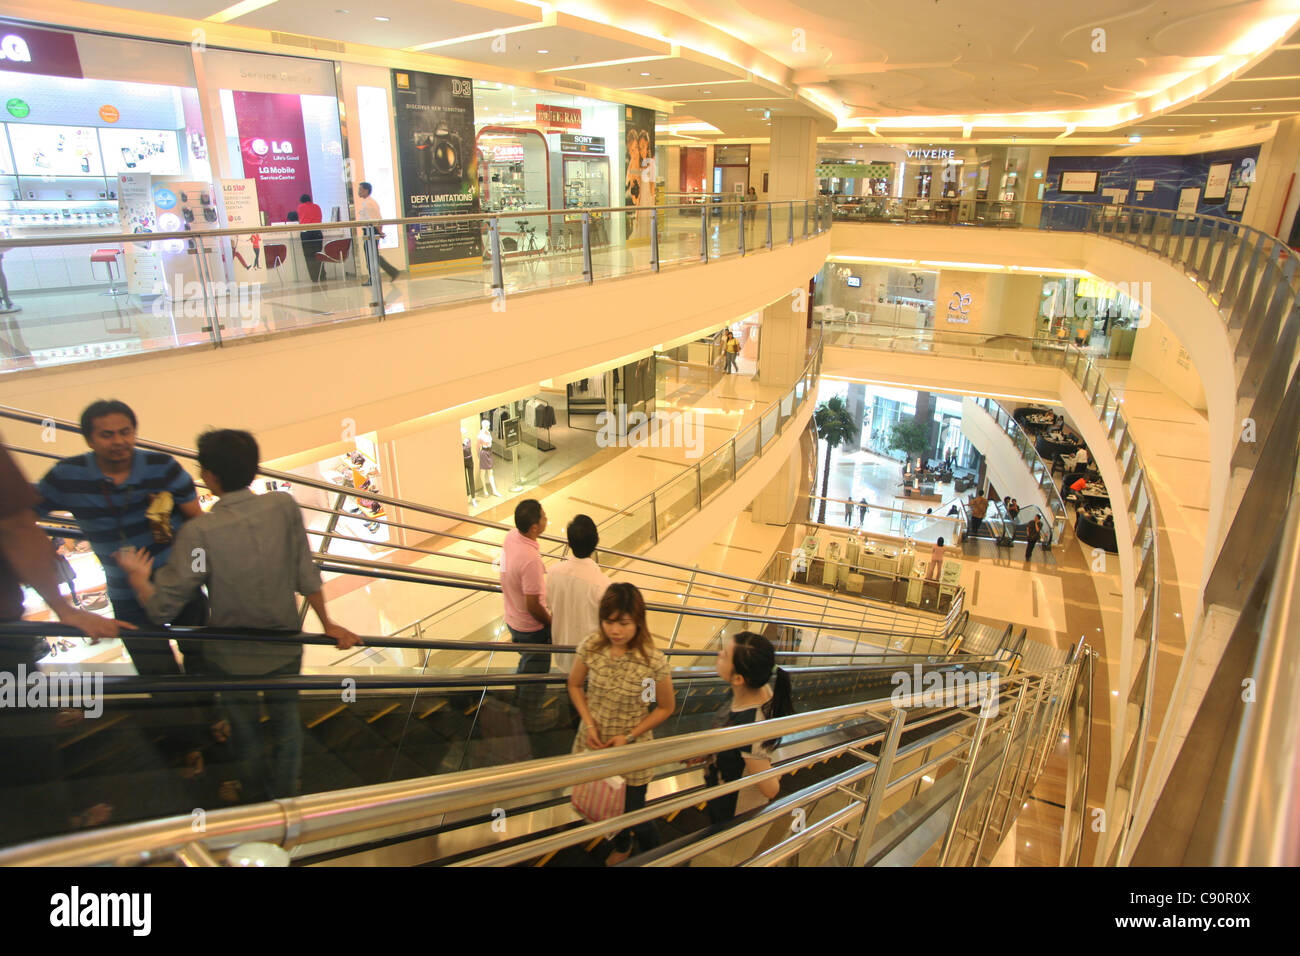 Interior Pacific Place shopping mall, Jakarta, Indonesia, Asia - Stock Image